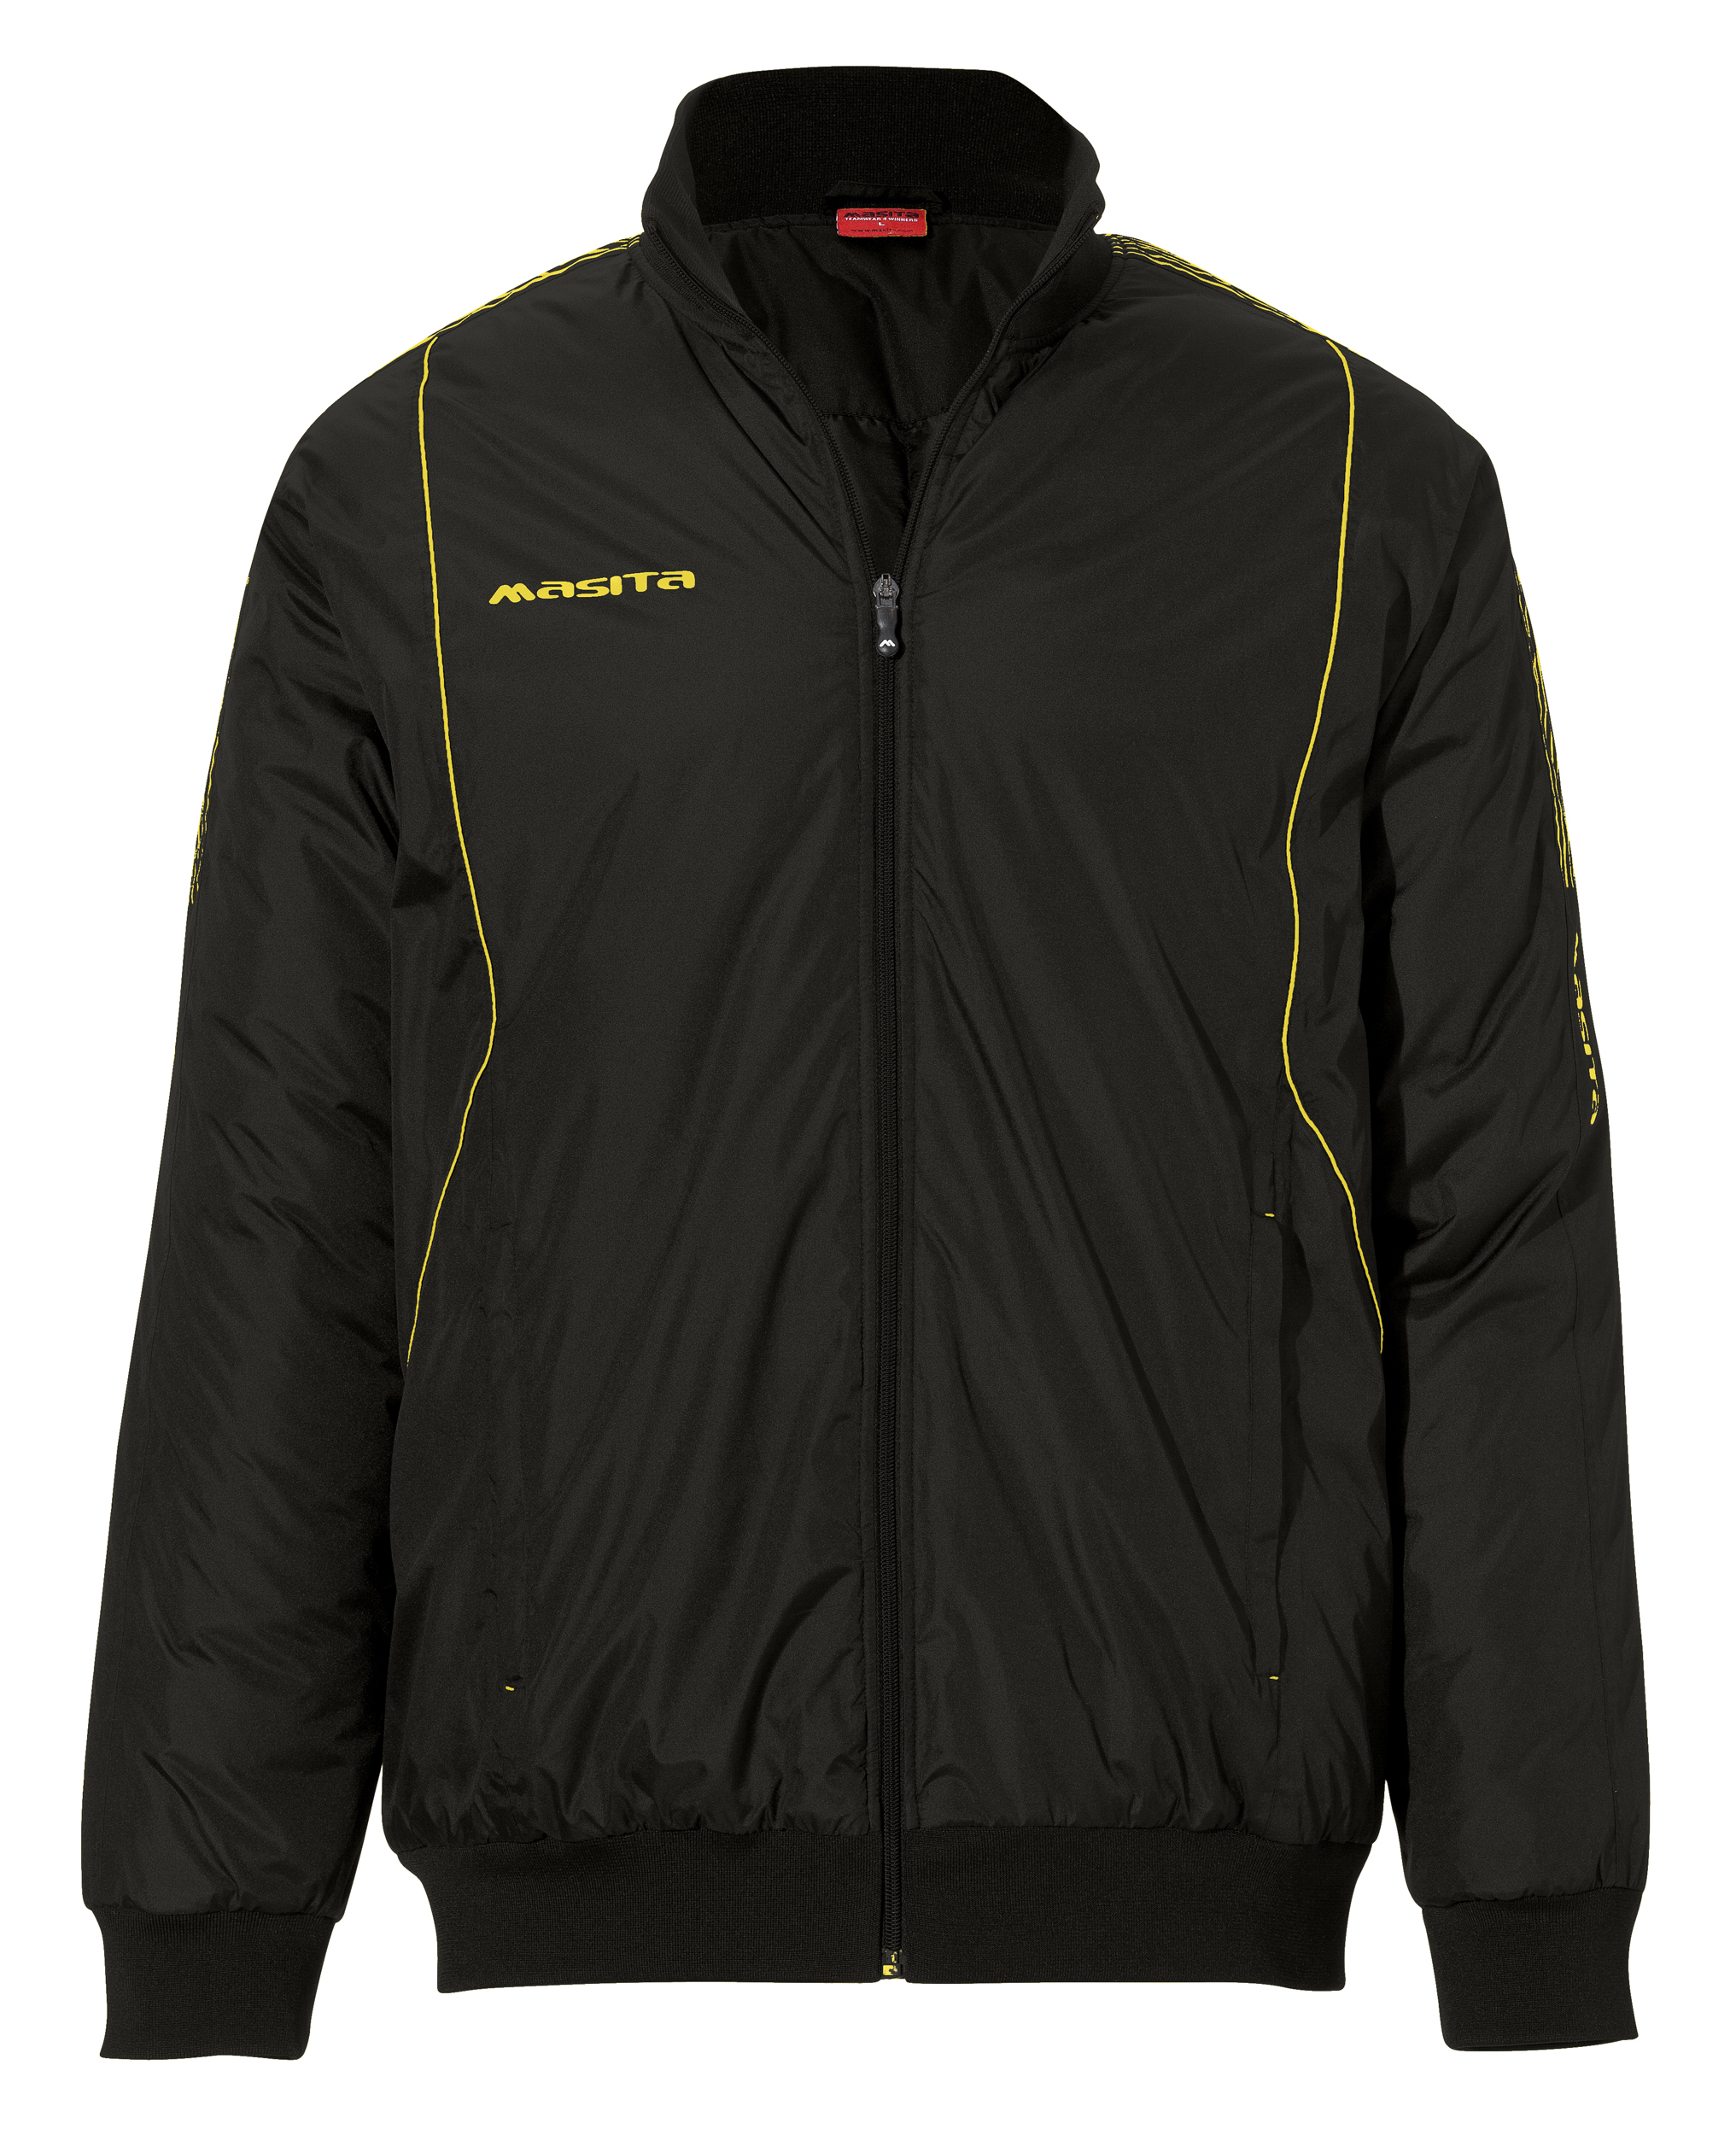 Coach-Jacket Barca  Black / Yellow